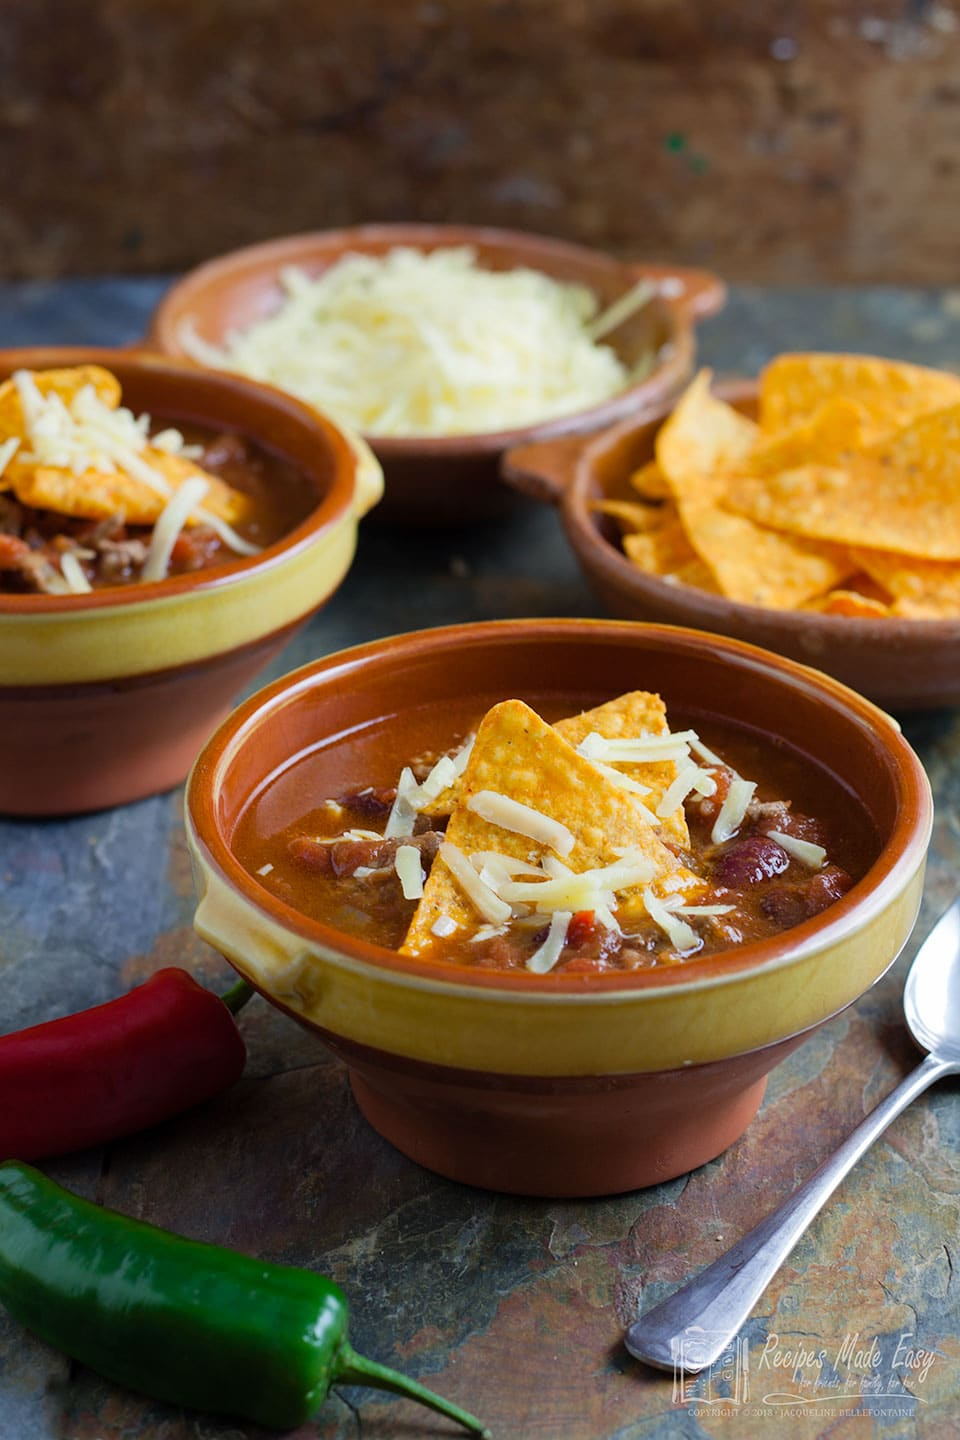 spicy mexican soup in a bowl with tortillas and cheese in background